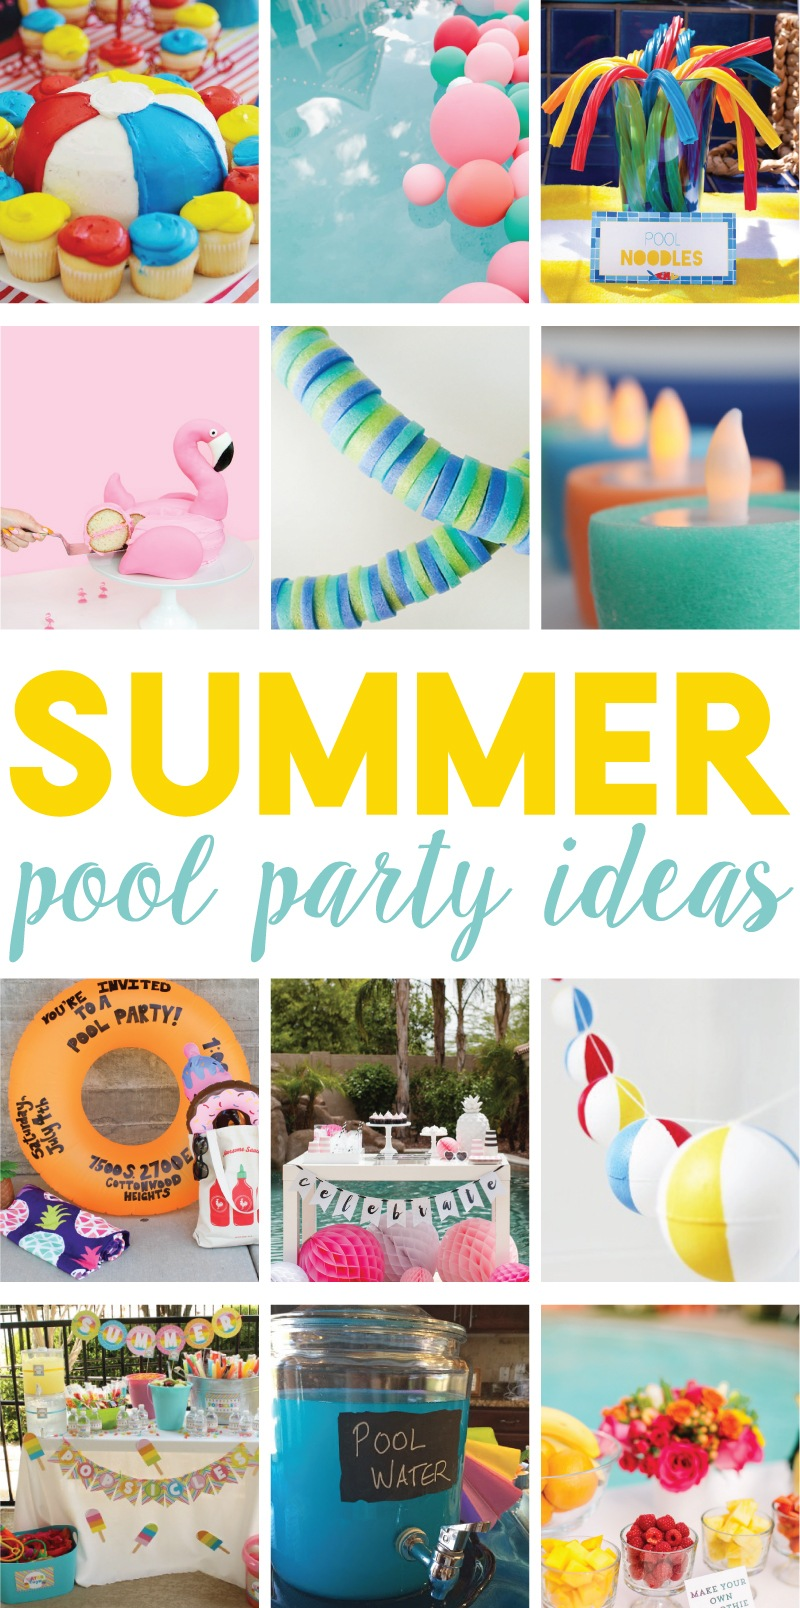 Summer pool party ideas :: diy pool party water bottles